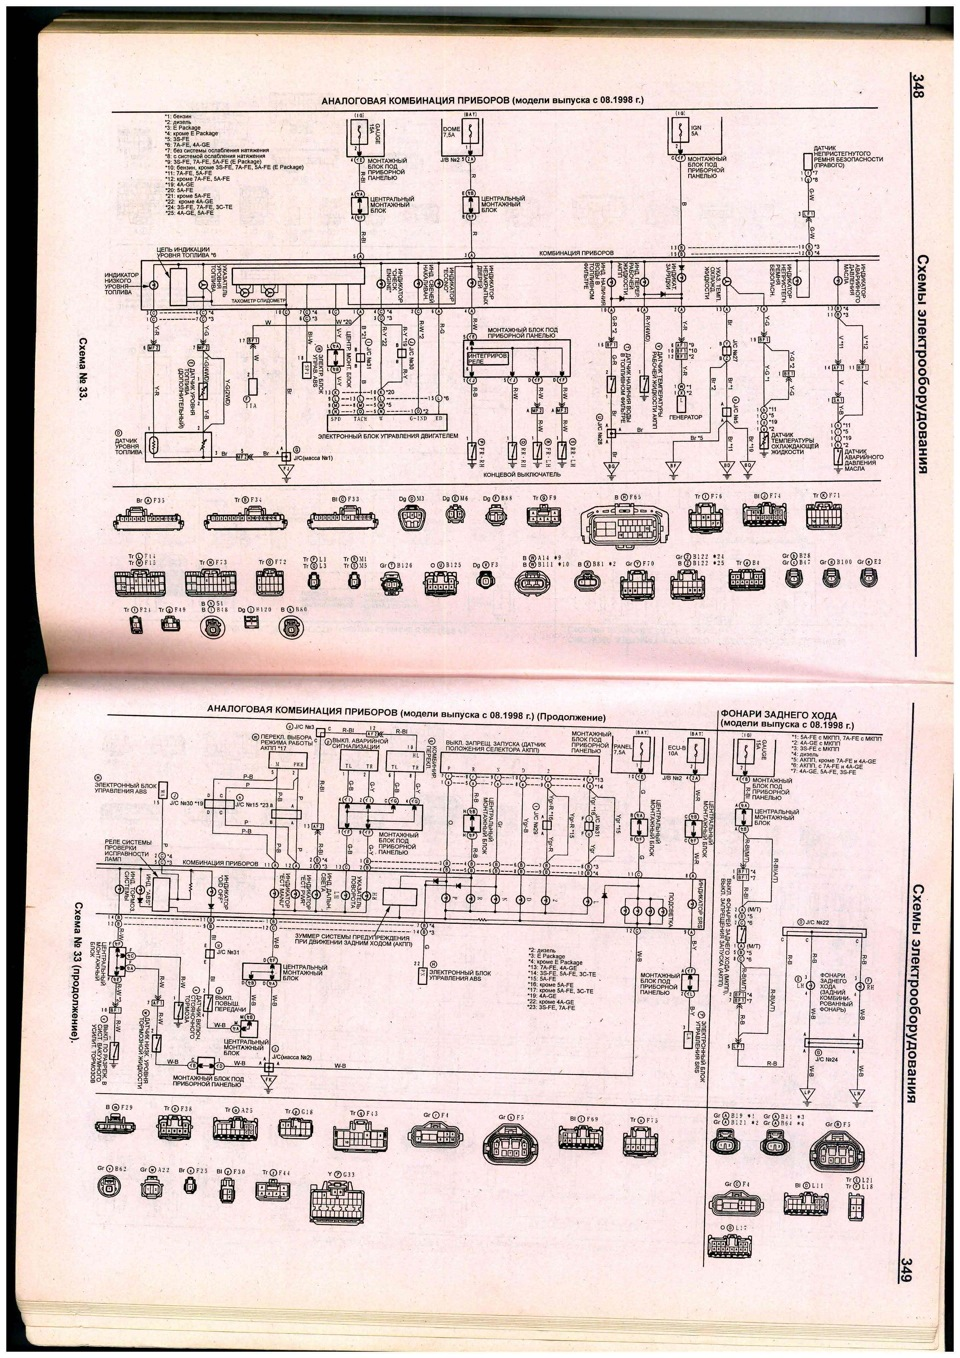 Replacement Of The Device With An Optotron Logbook Toyota Carina Gaia Wiring Diagram Analog Panel Layout From Primer